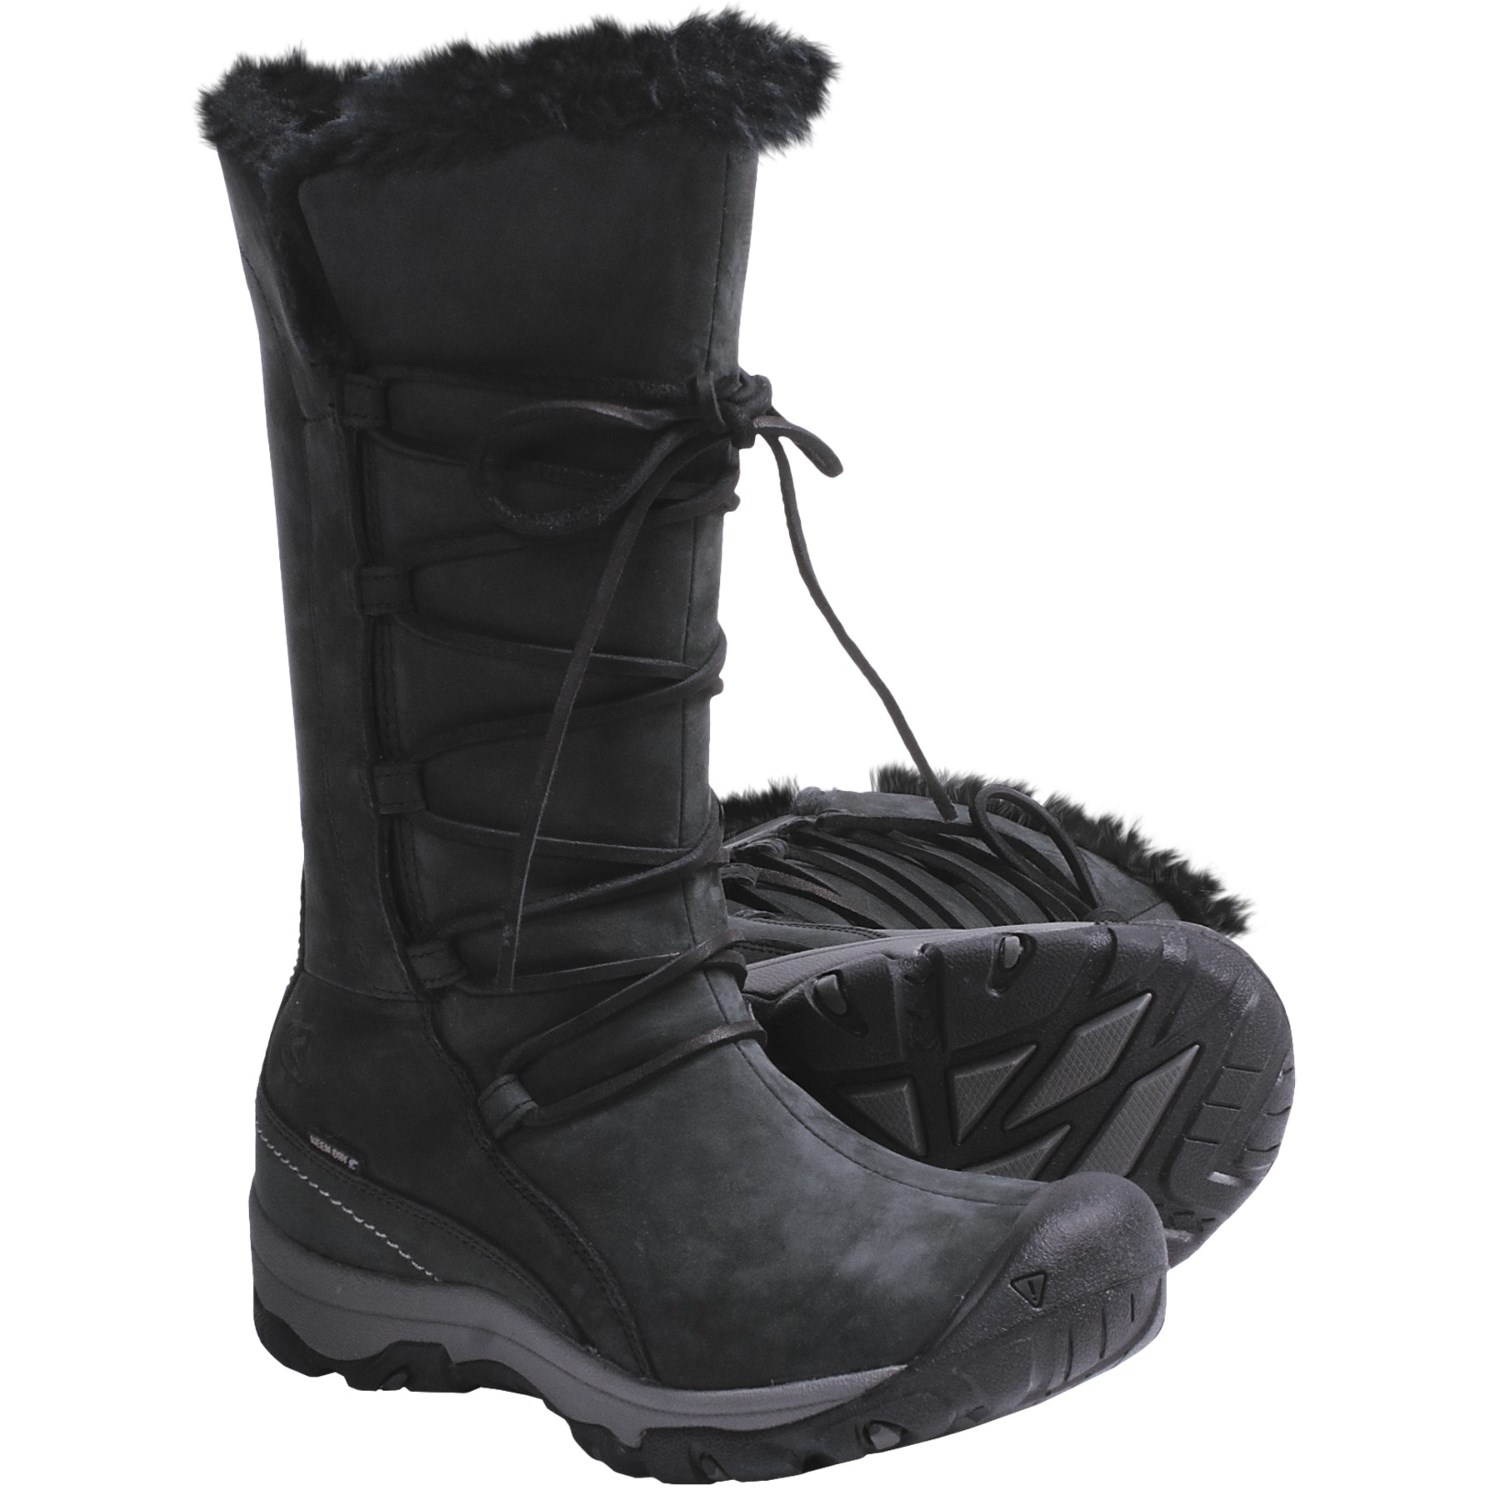 Keen Brighton High Boots For Women 4688g Save 58